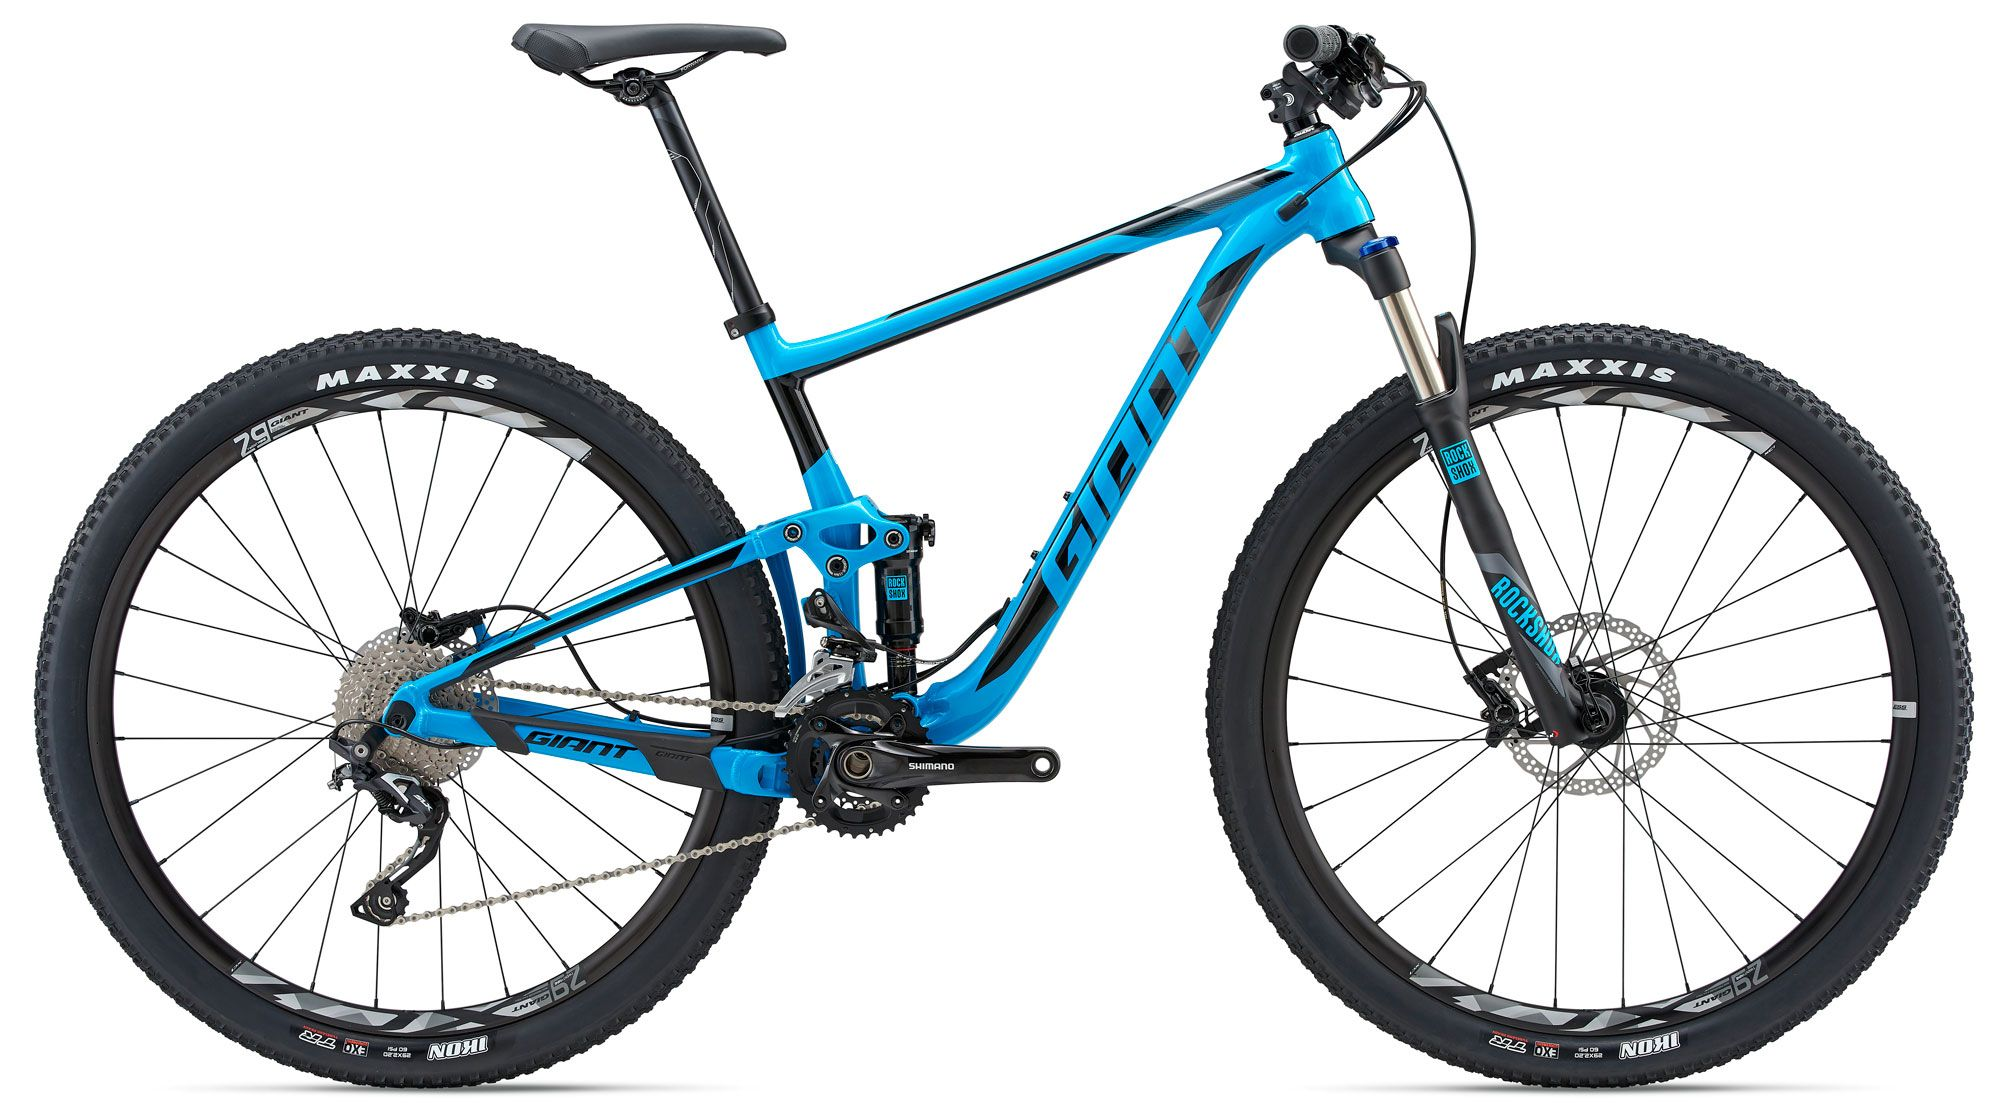 Велосипед Giant Anthem 29er 3 2018 велосипед giant talon 29er 2 blk 2014